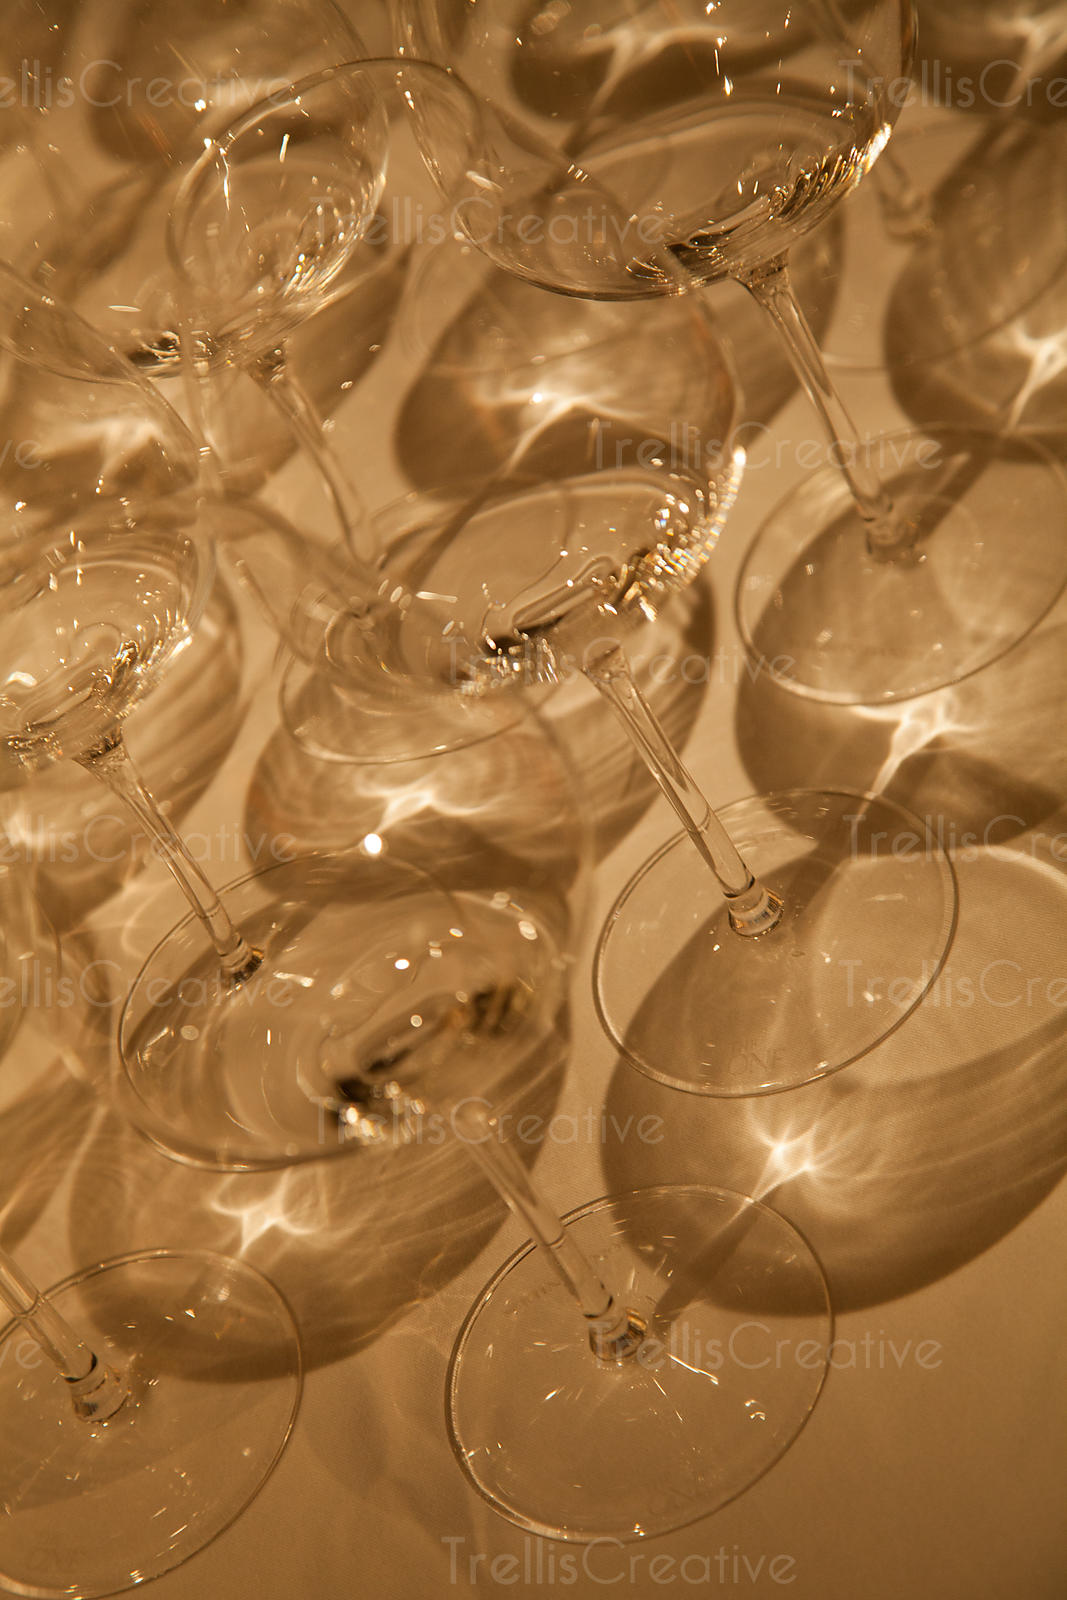 Abstract photo of clean crystal wine glasses and reflections